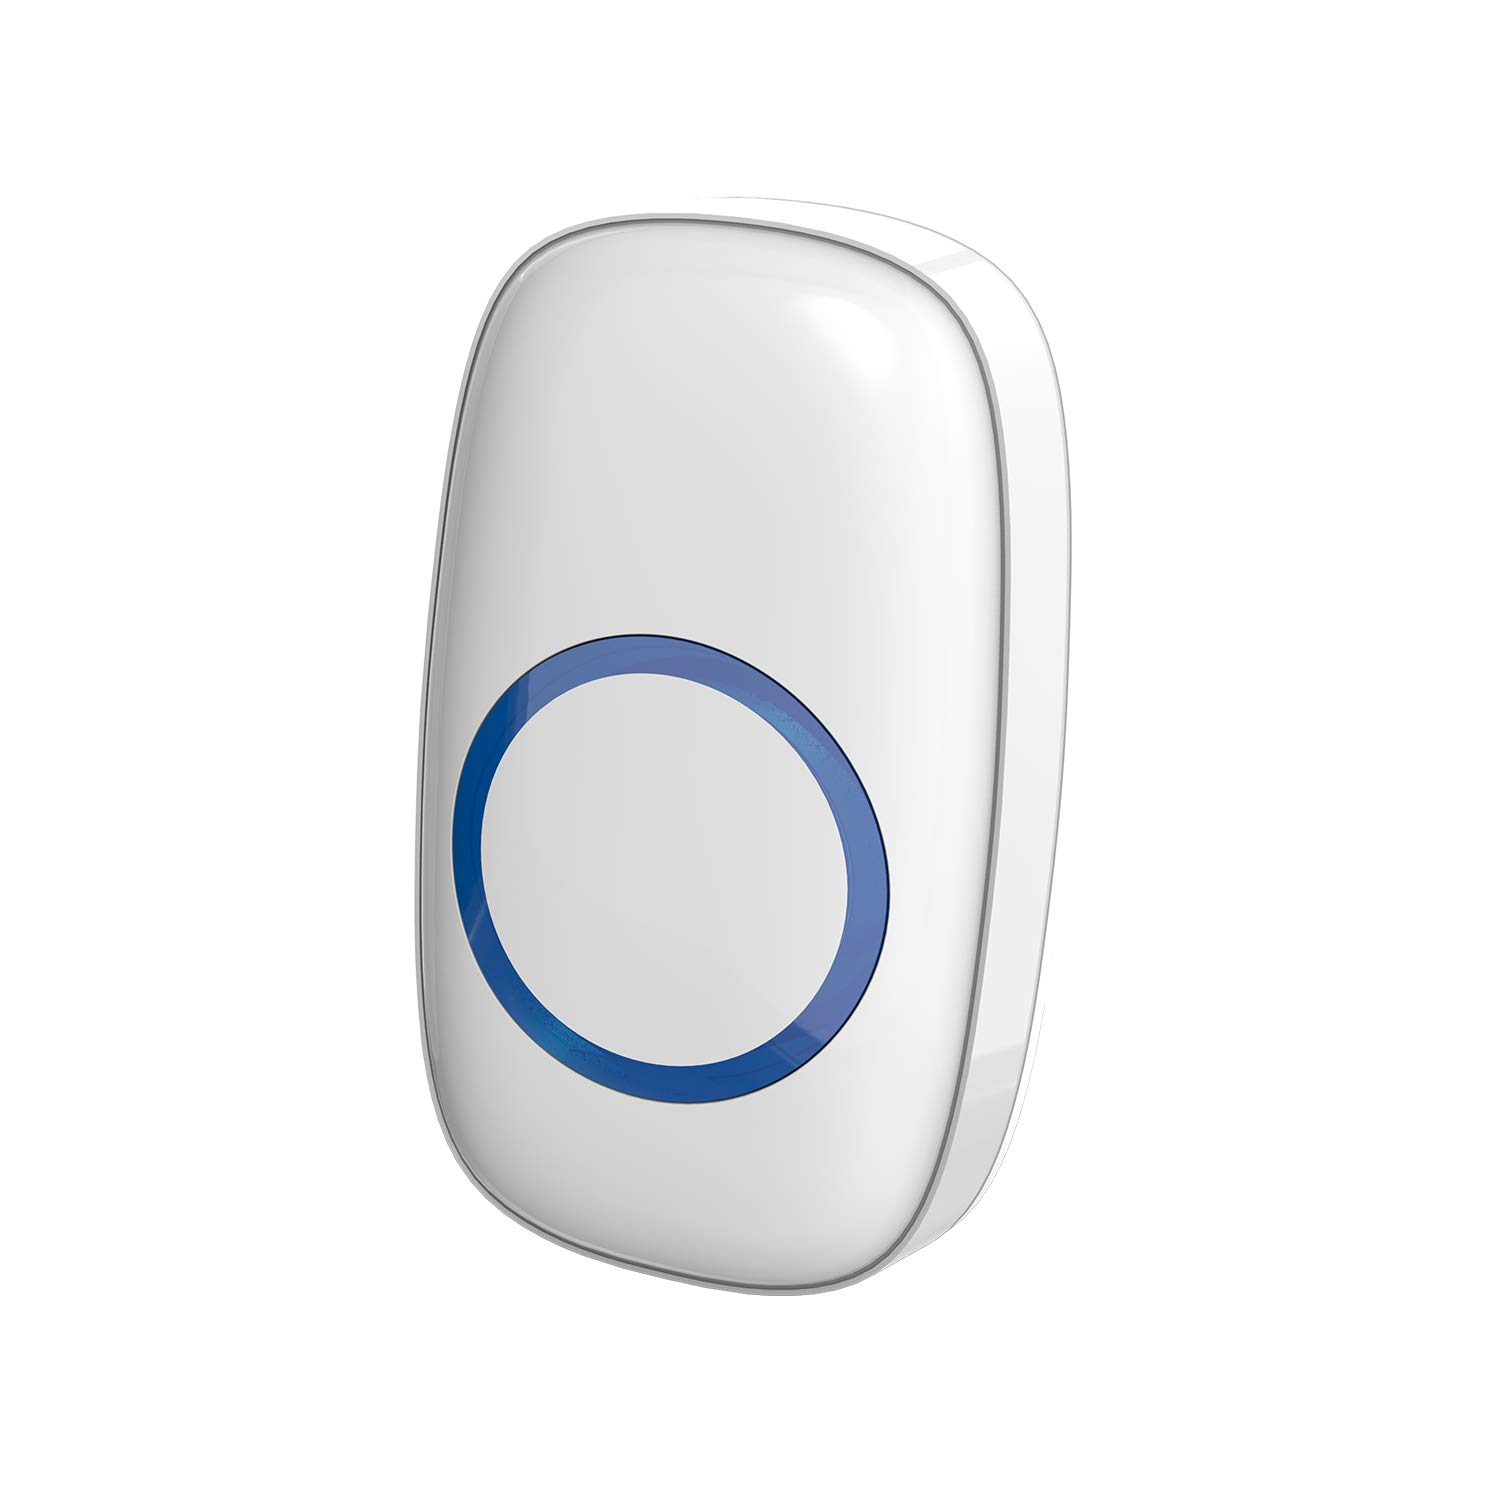 STARPOINT Extra Add-On Remote Transmitter Button for STARPOINT Expandable Wireless Multi-Unit Long Range Doorbell Chime Alert System, Model LT, White